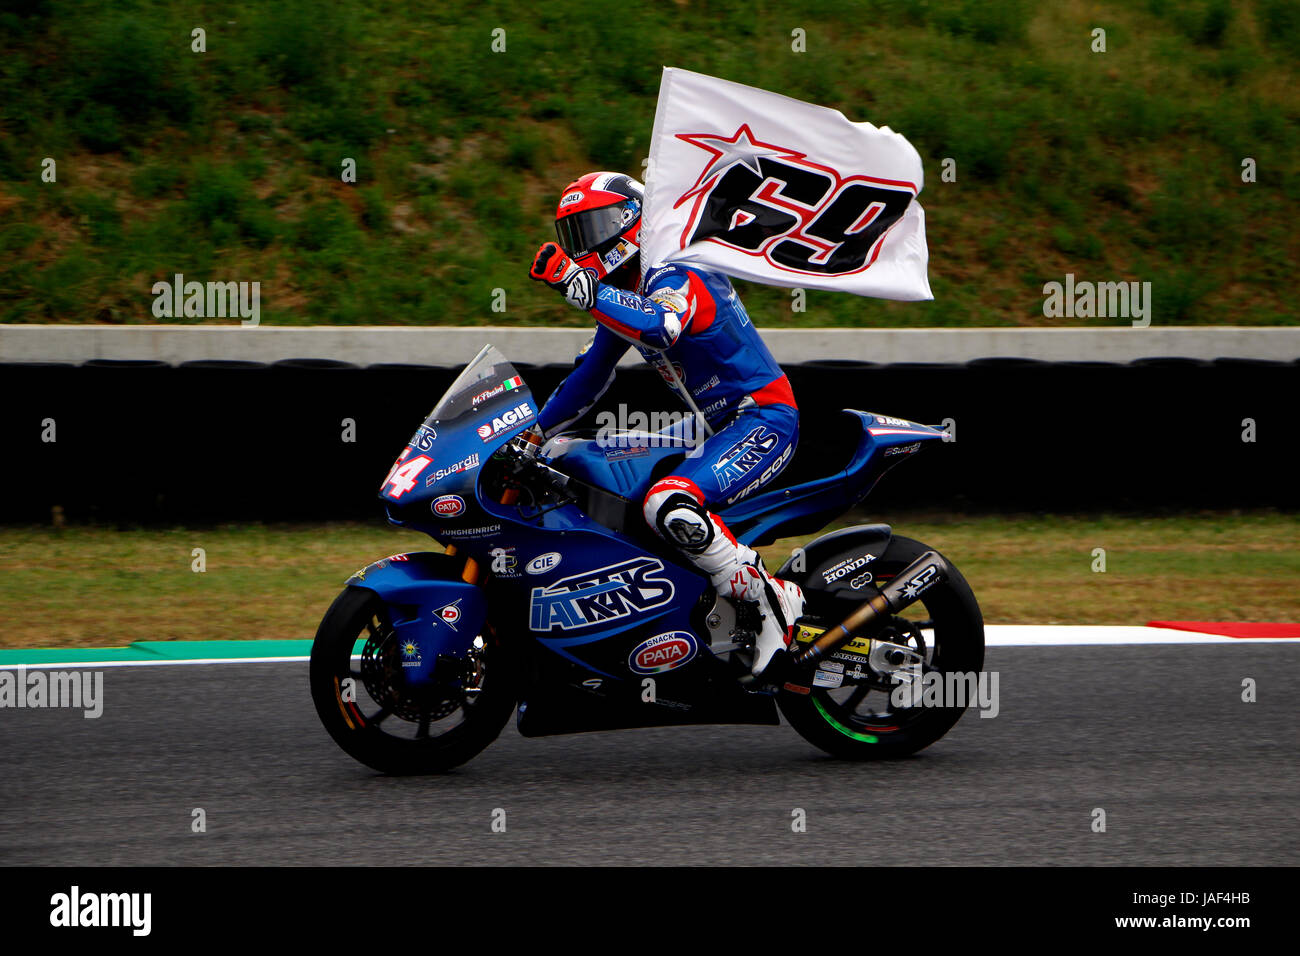 Florence, Italy. 04th June, 2017. Mattia Pasini pays tribute to Nicky Hayden whilst celebrating victory at the 2017 - Stock Image